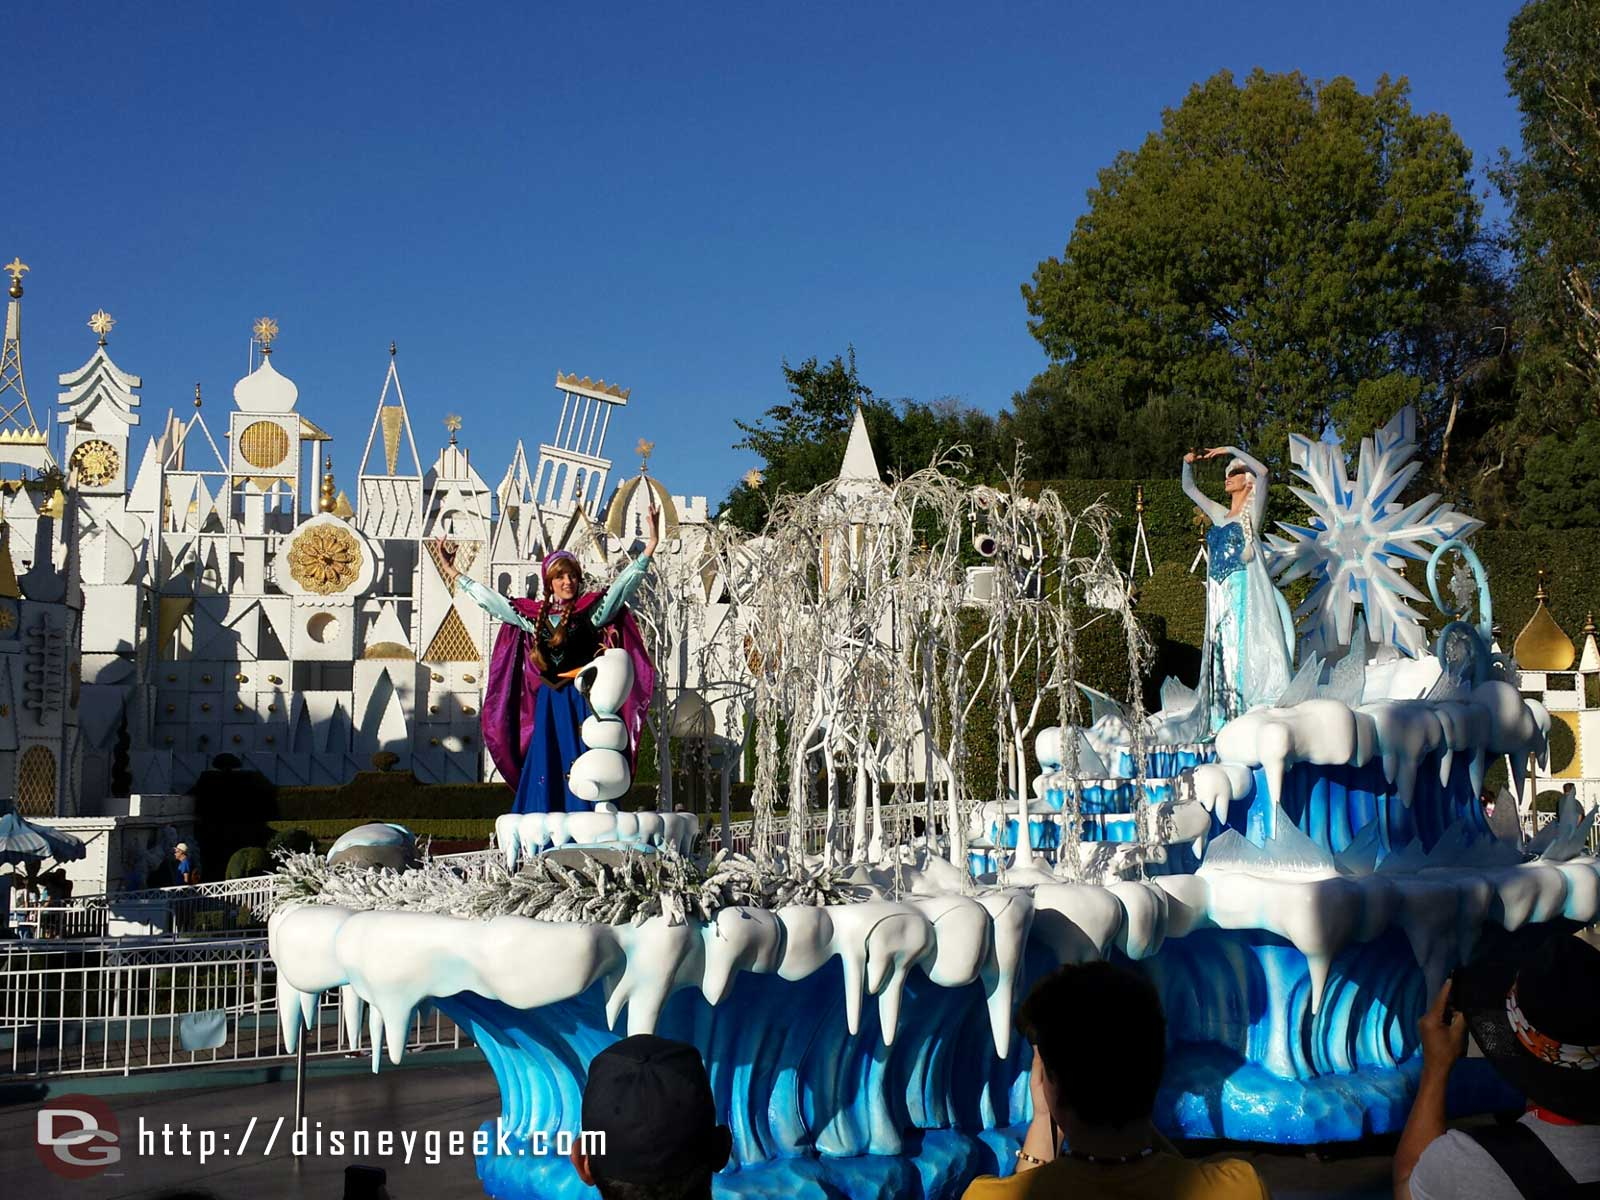 Anna, Elsa & Olaf are on the Winter Wonderland float #Disneyland #Frozen